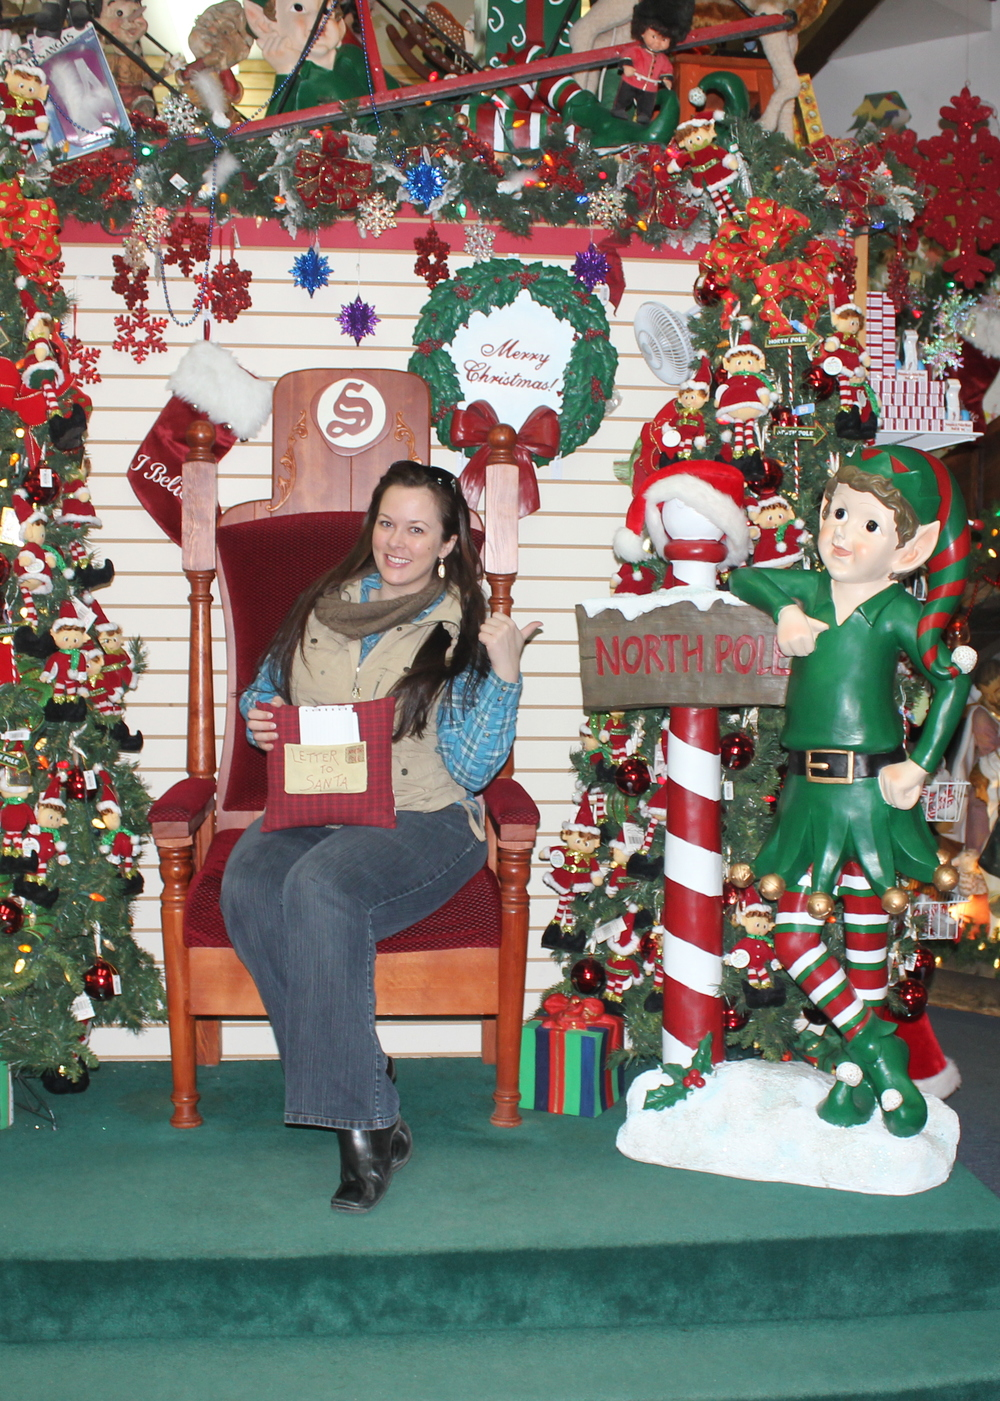 Stealing Santa's chair.  The elf got creeped out when I pointed to him.